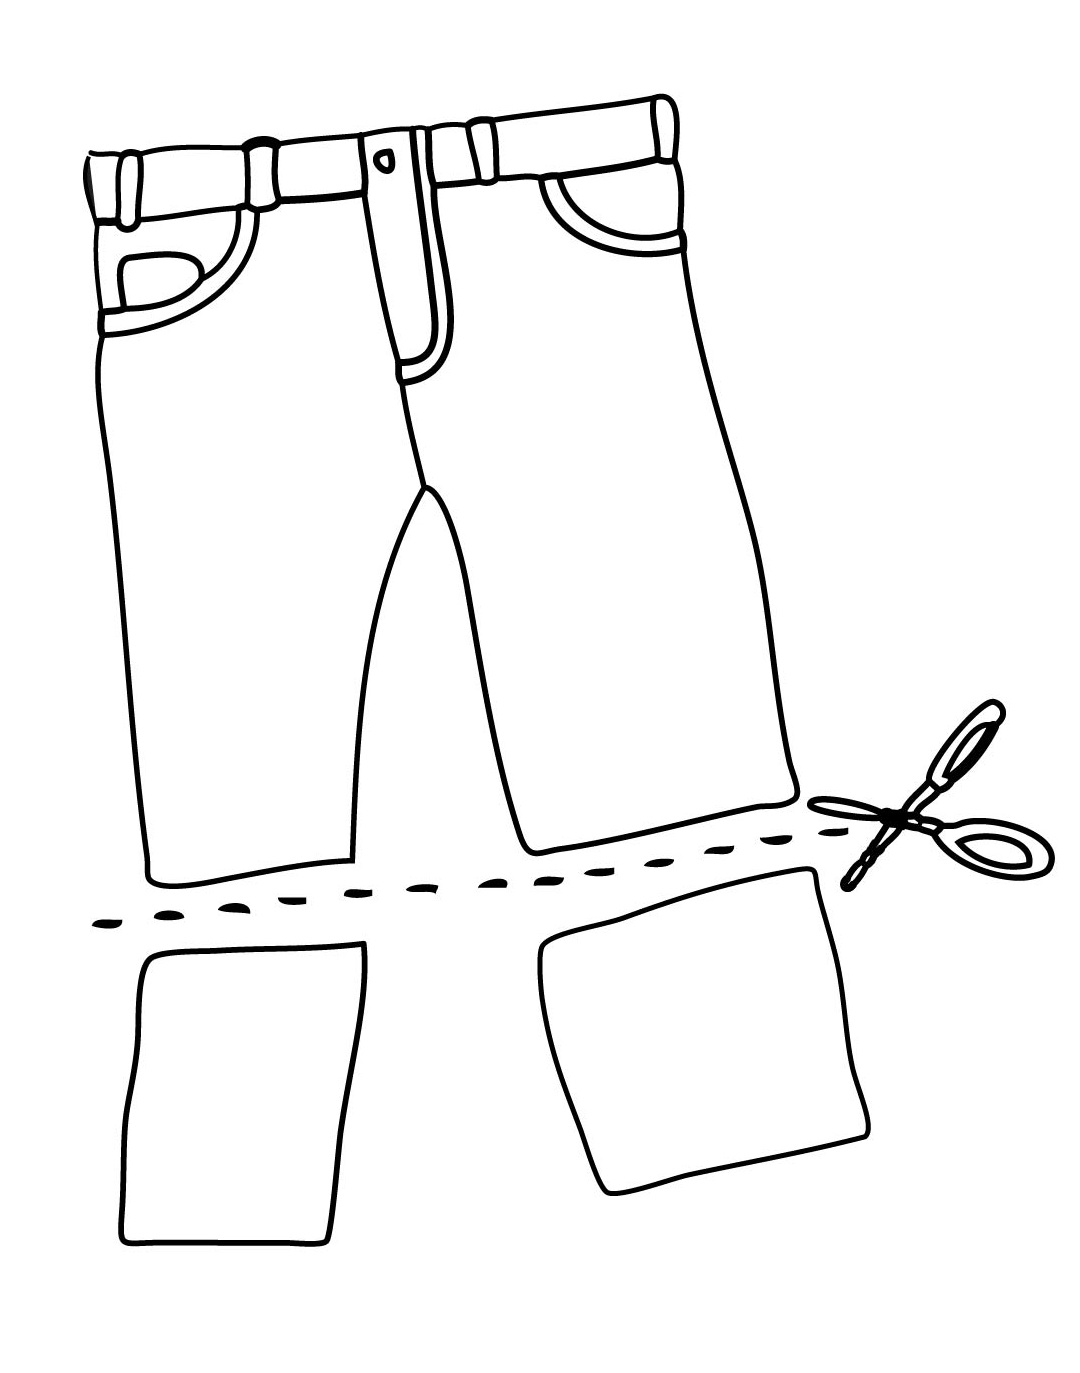 how to cut jeans in a interesting way